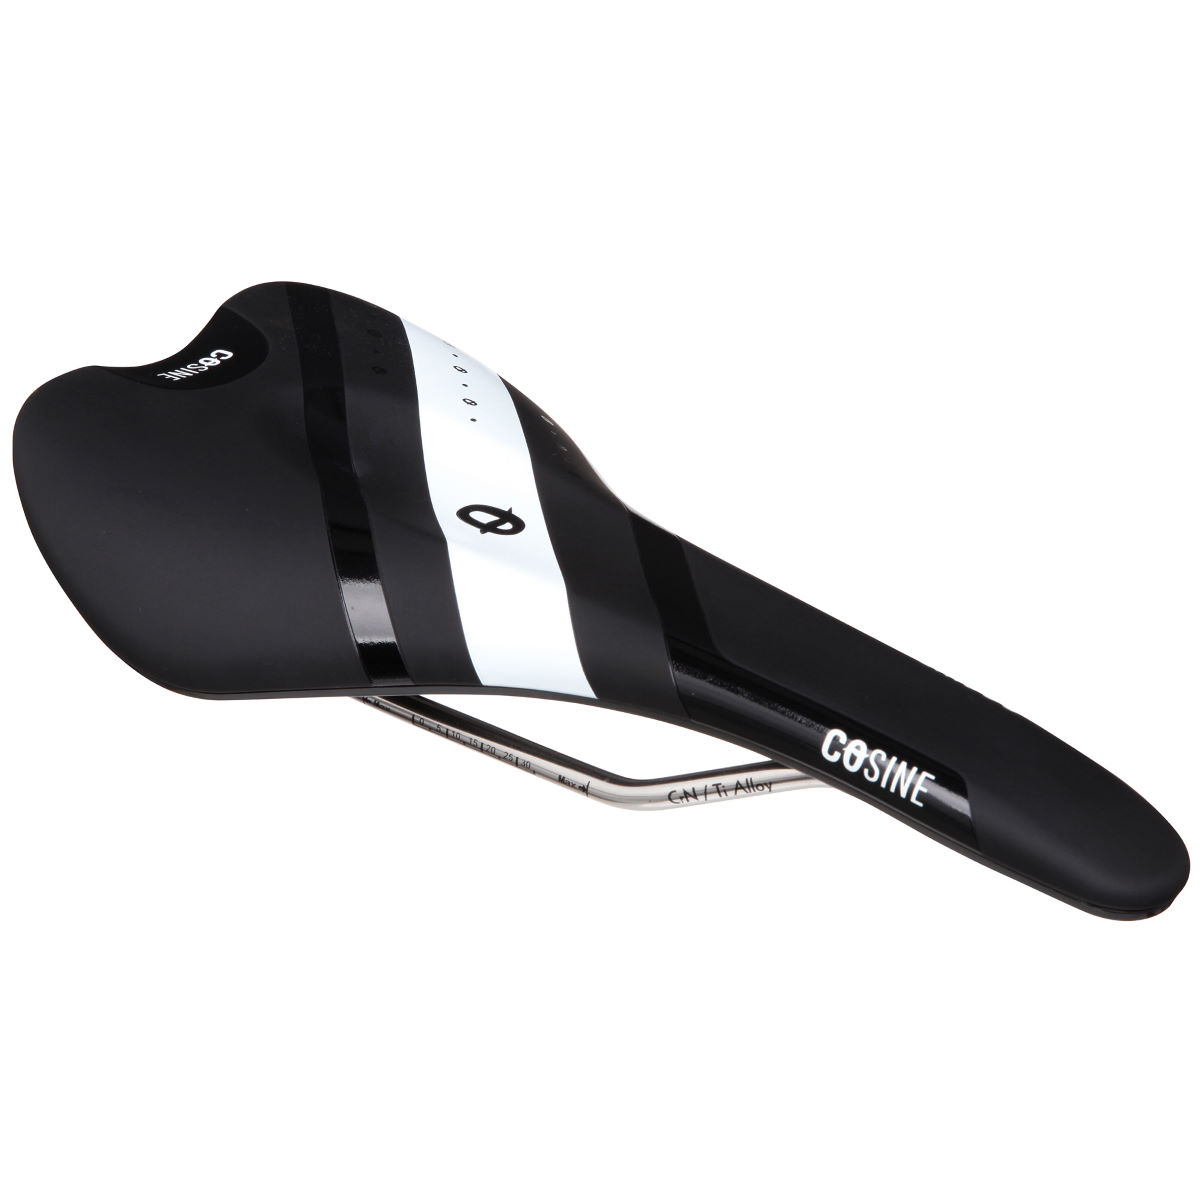 COSINE TI Sprint Road Saddle